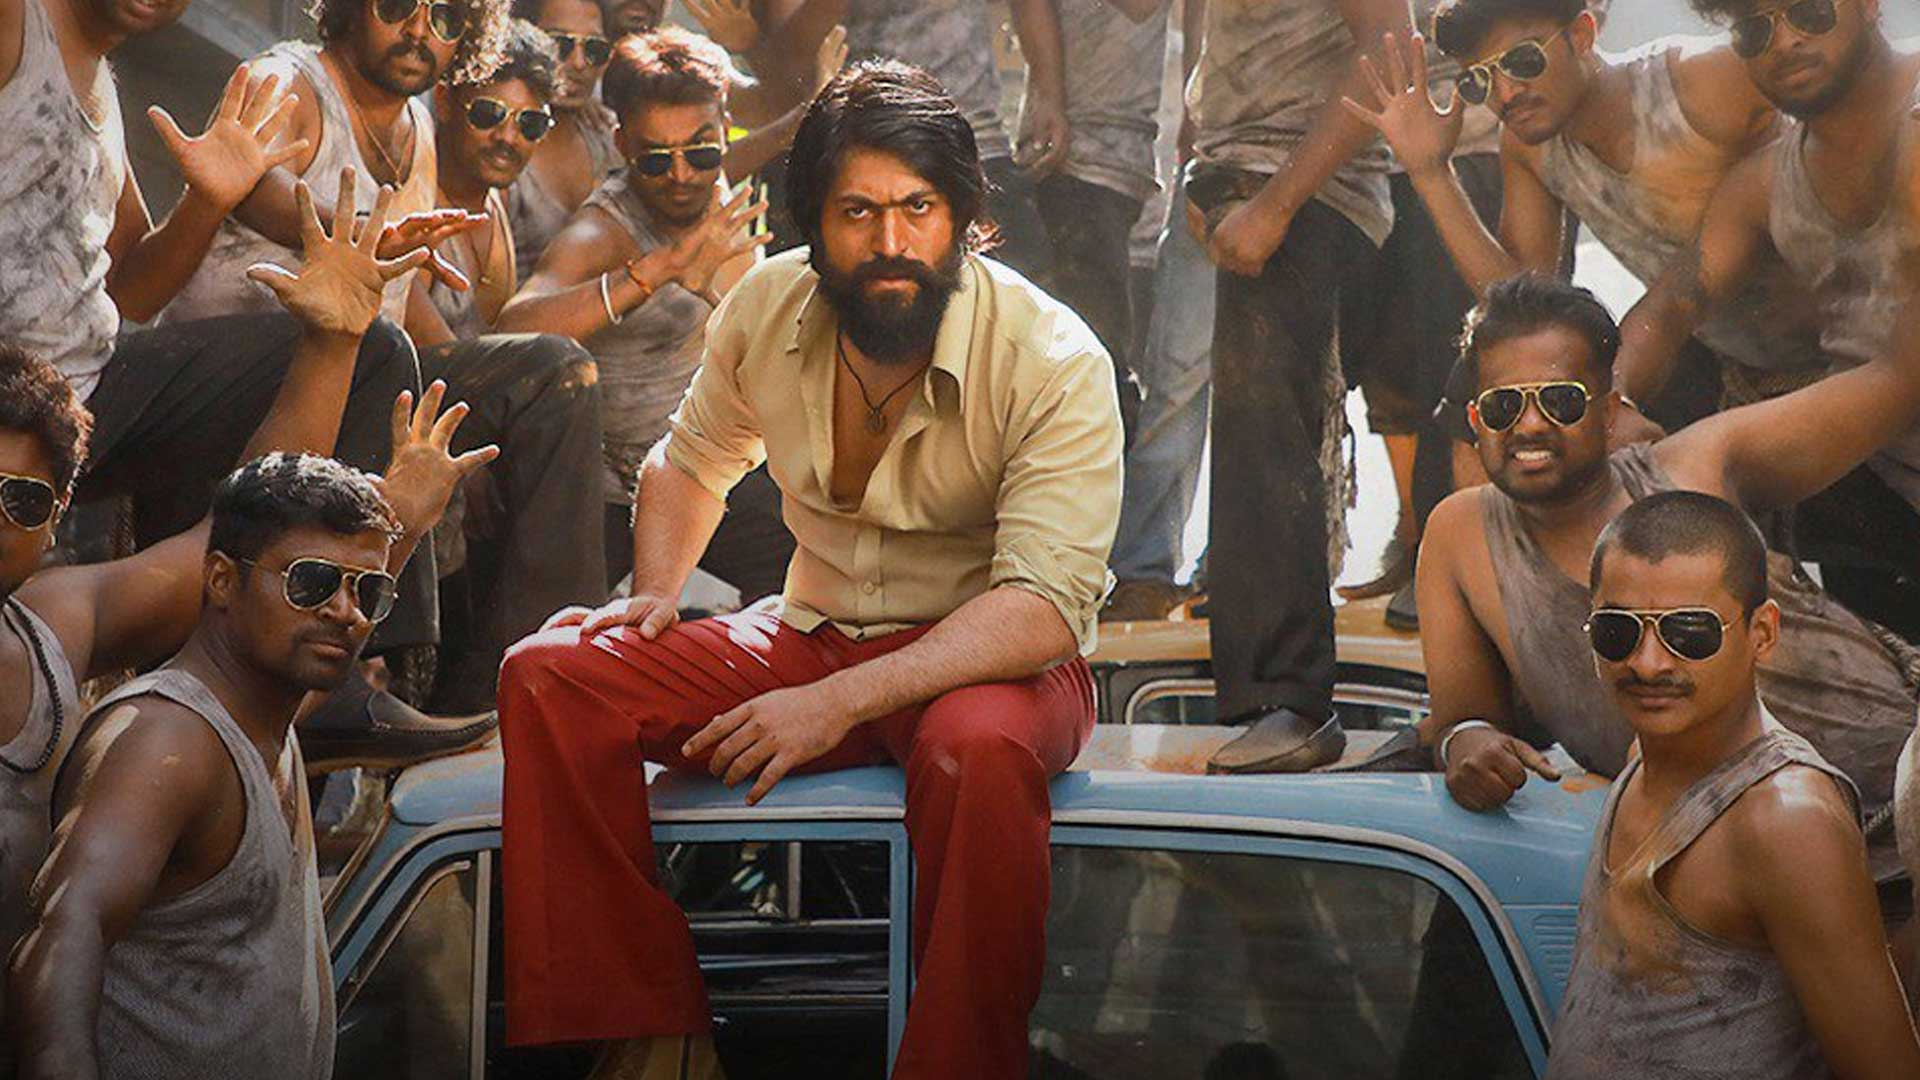 kgf-chapter-1-introduces-a-new-superhero-